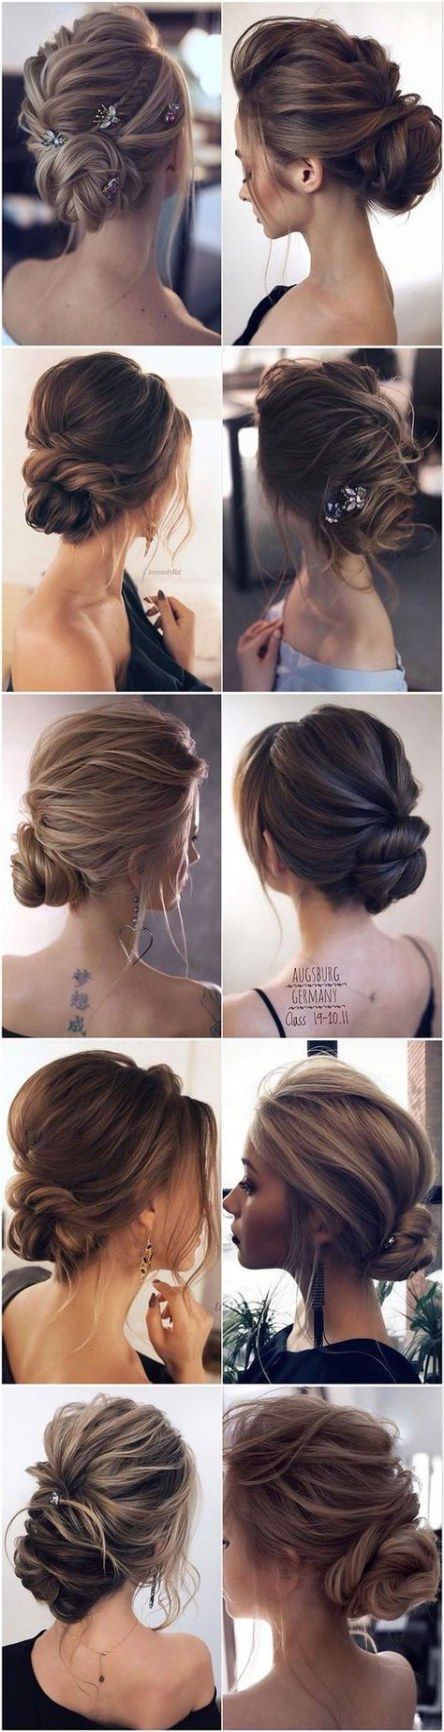 39+ ideas hairstyles elegant easy simple updo for 2019